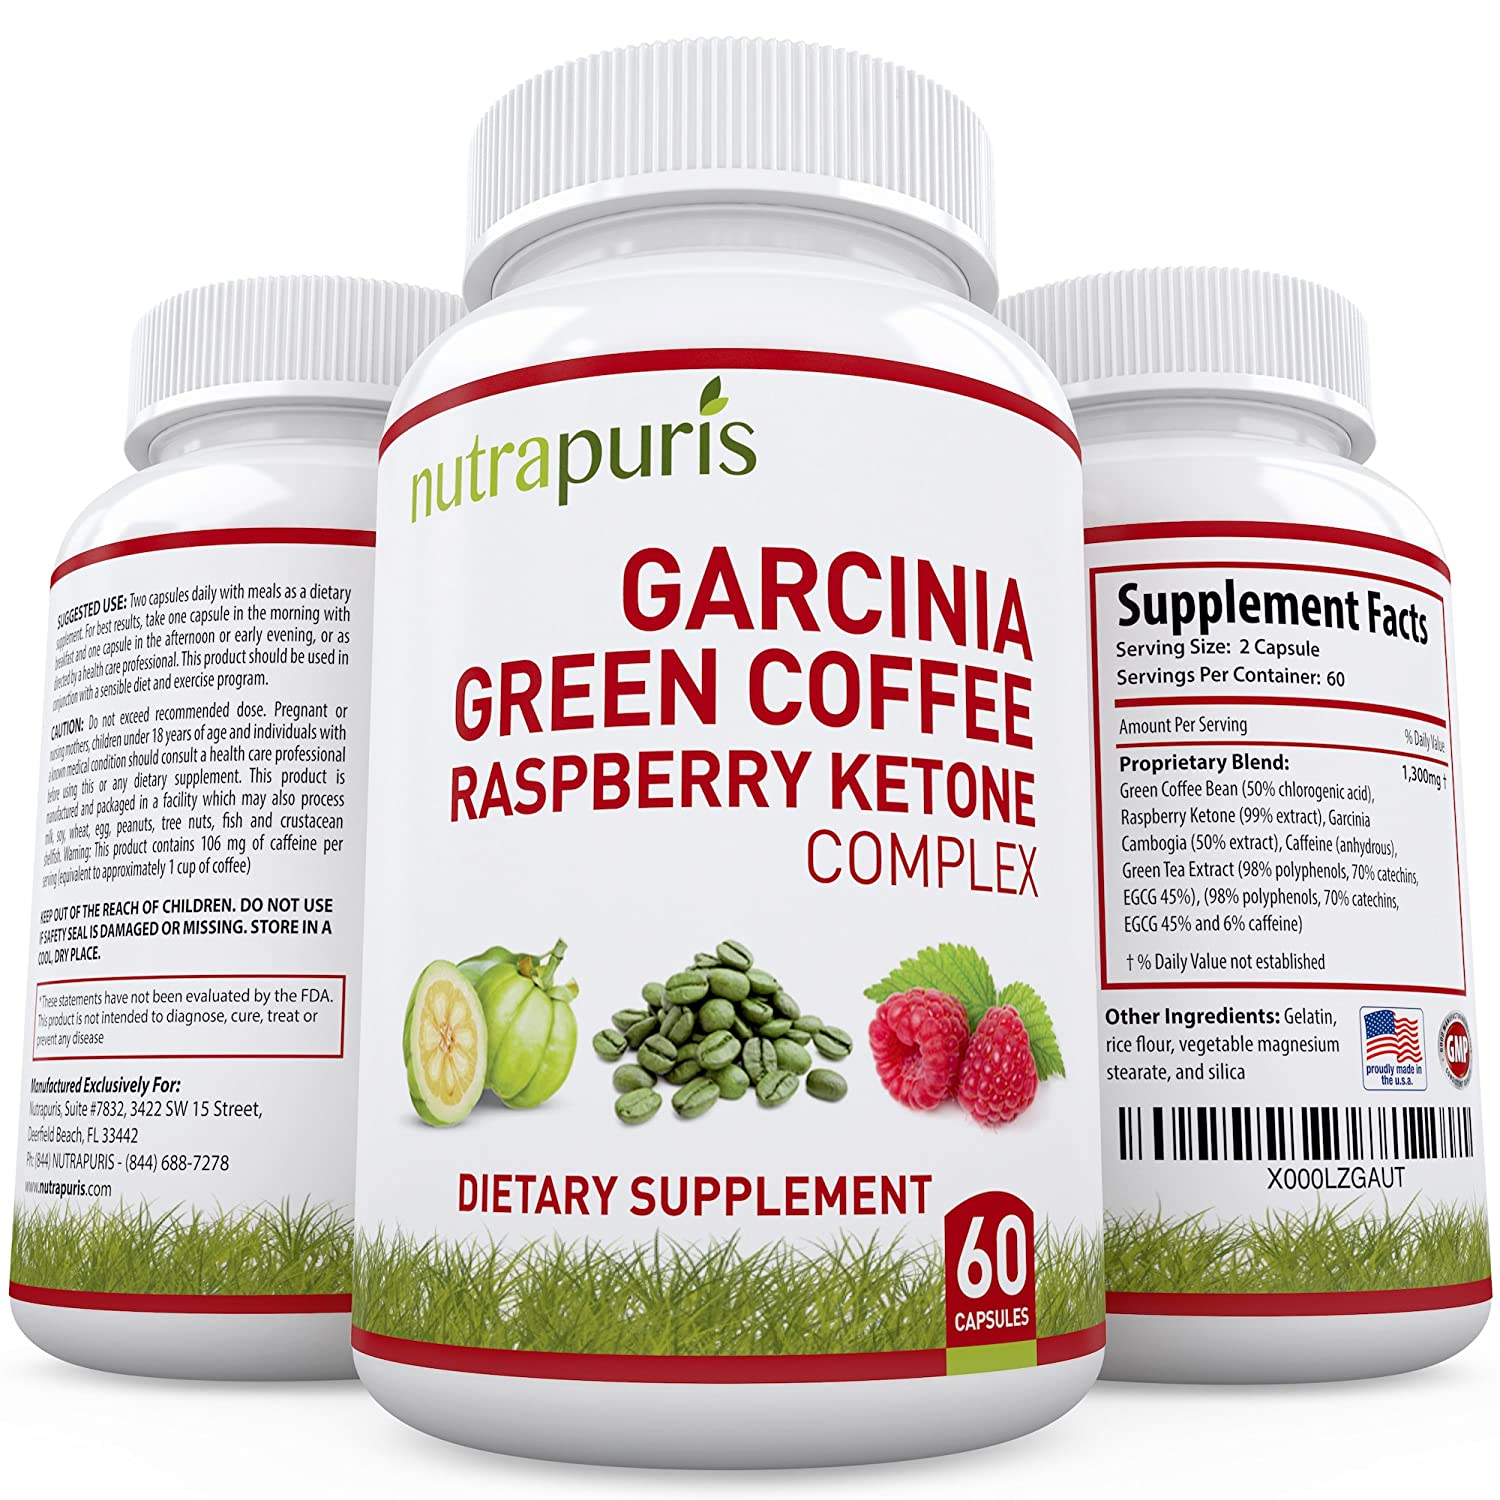 advanced trim green coffee and garcinia cambogia cleanse combo diet